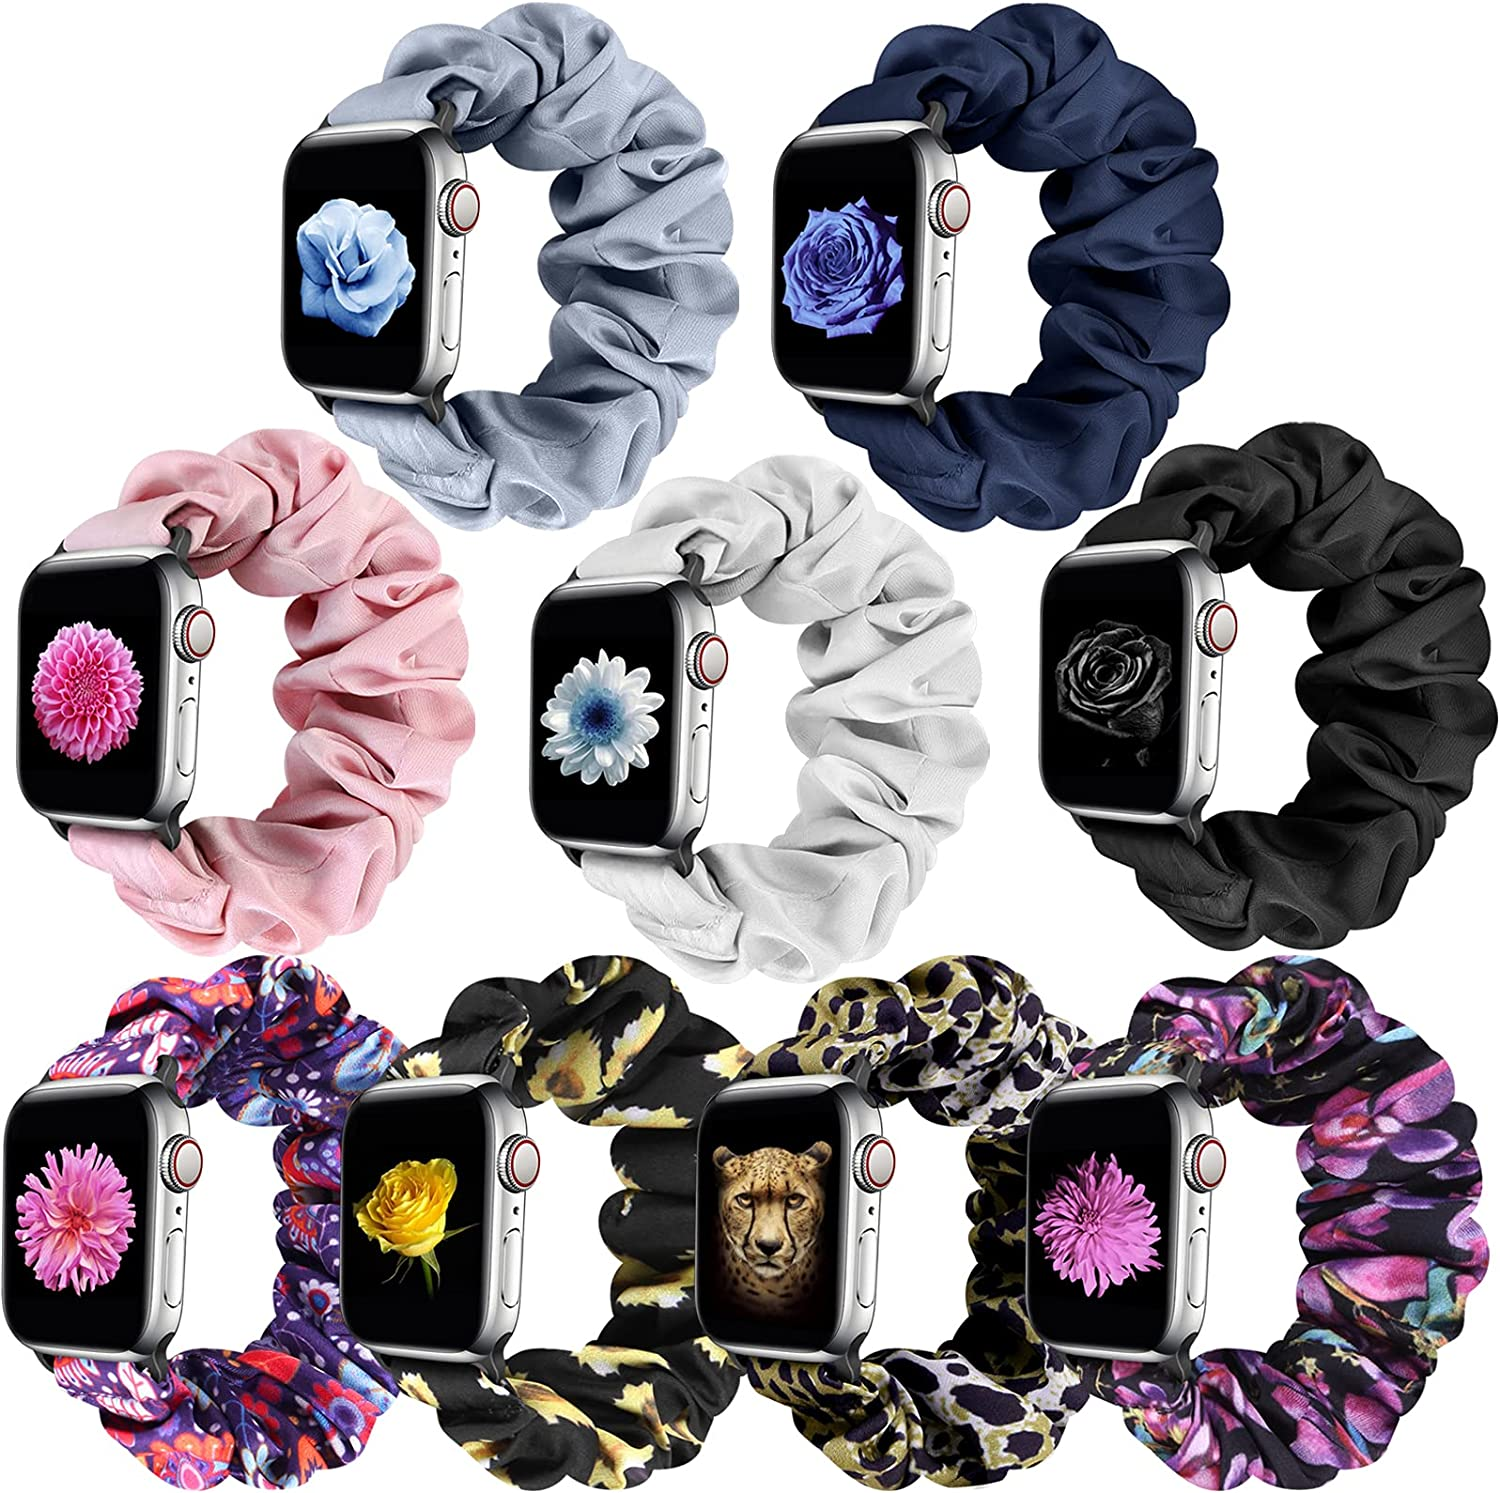 XFYELE Scrunchie Solo Loop Watch Bands Compatible with Apple Watch 38mm 40mm 41mm 42mm 44mm 45mm, Elastic Soft Pattern Printed Fabric Replacement Wristbands Bracelet Strap Women Girl for iWatch Series 7/6/5/4/3/2/1/SE